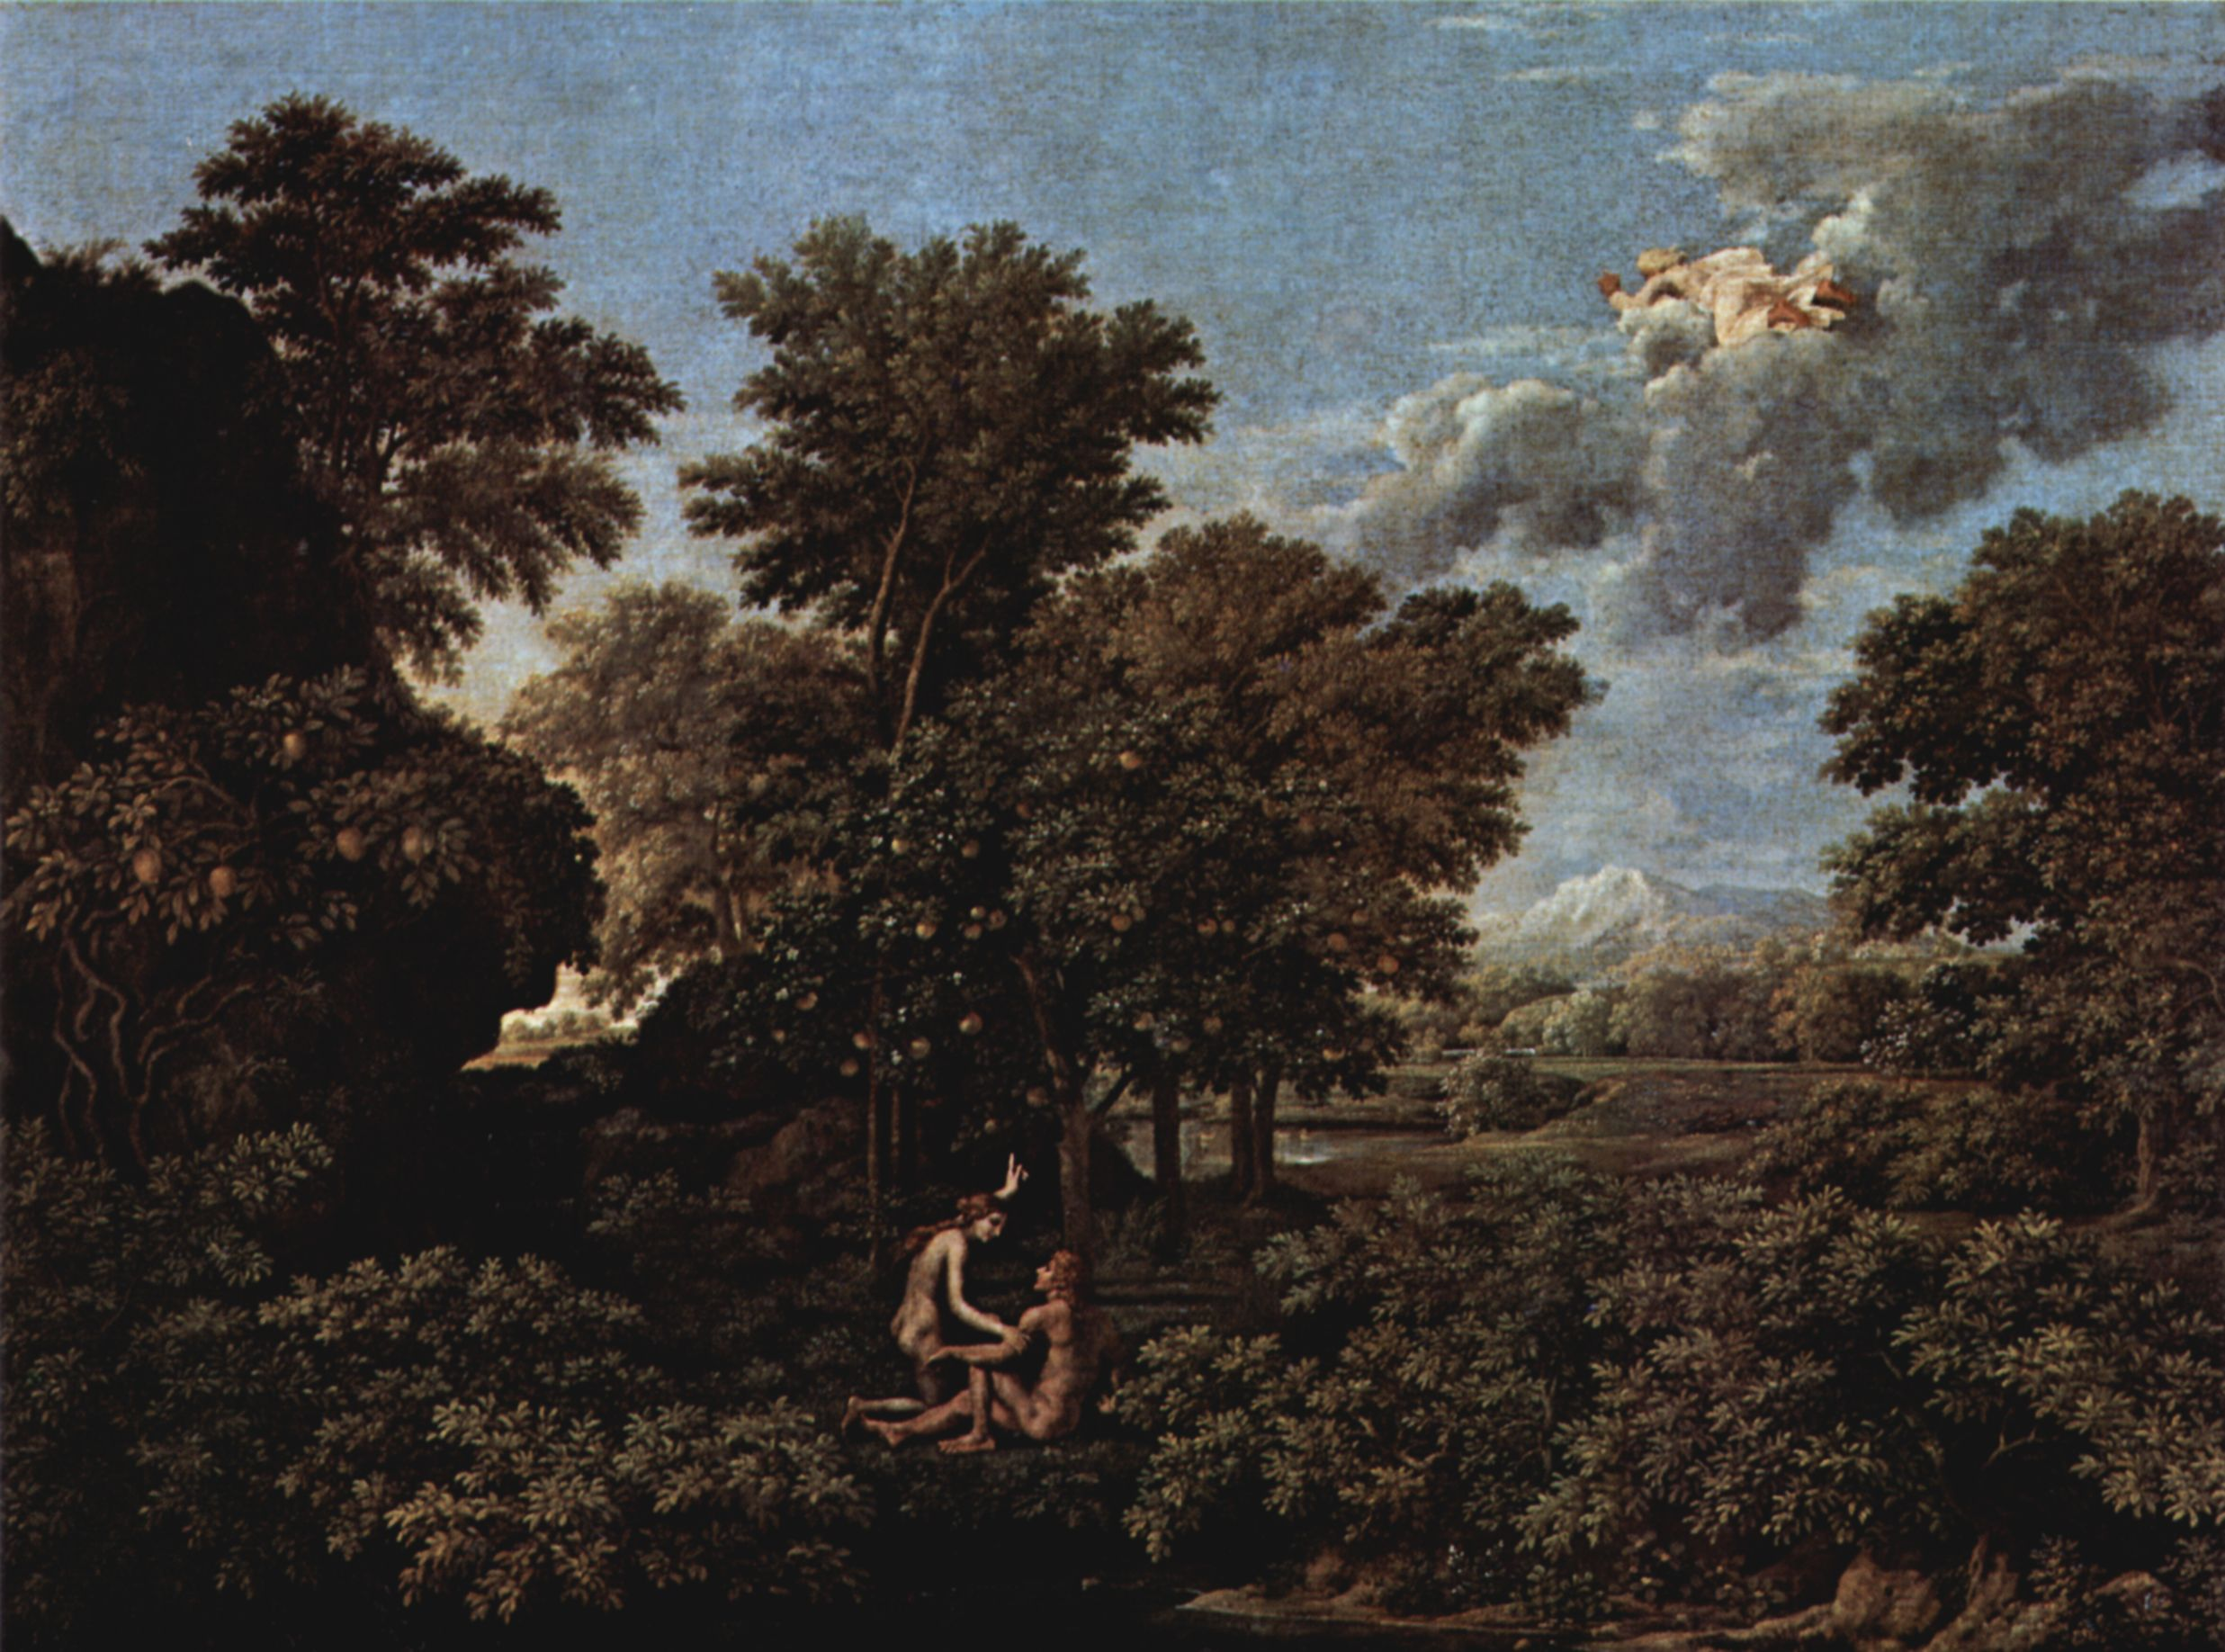 Spring (The Earthly Paradise), Nicolas Poussin, 1660